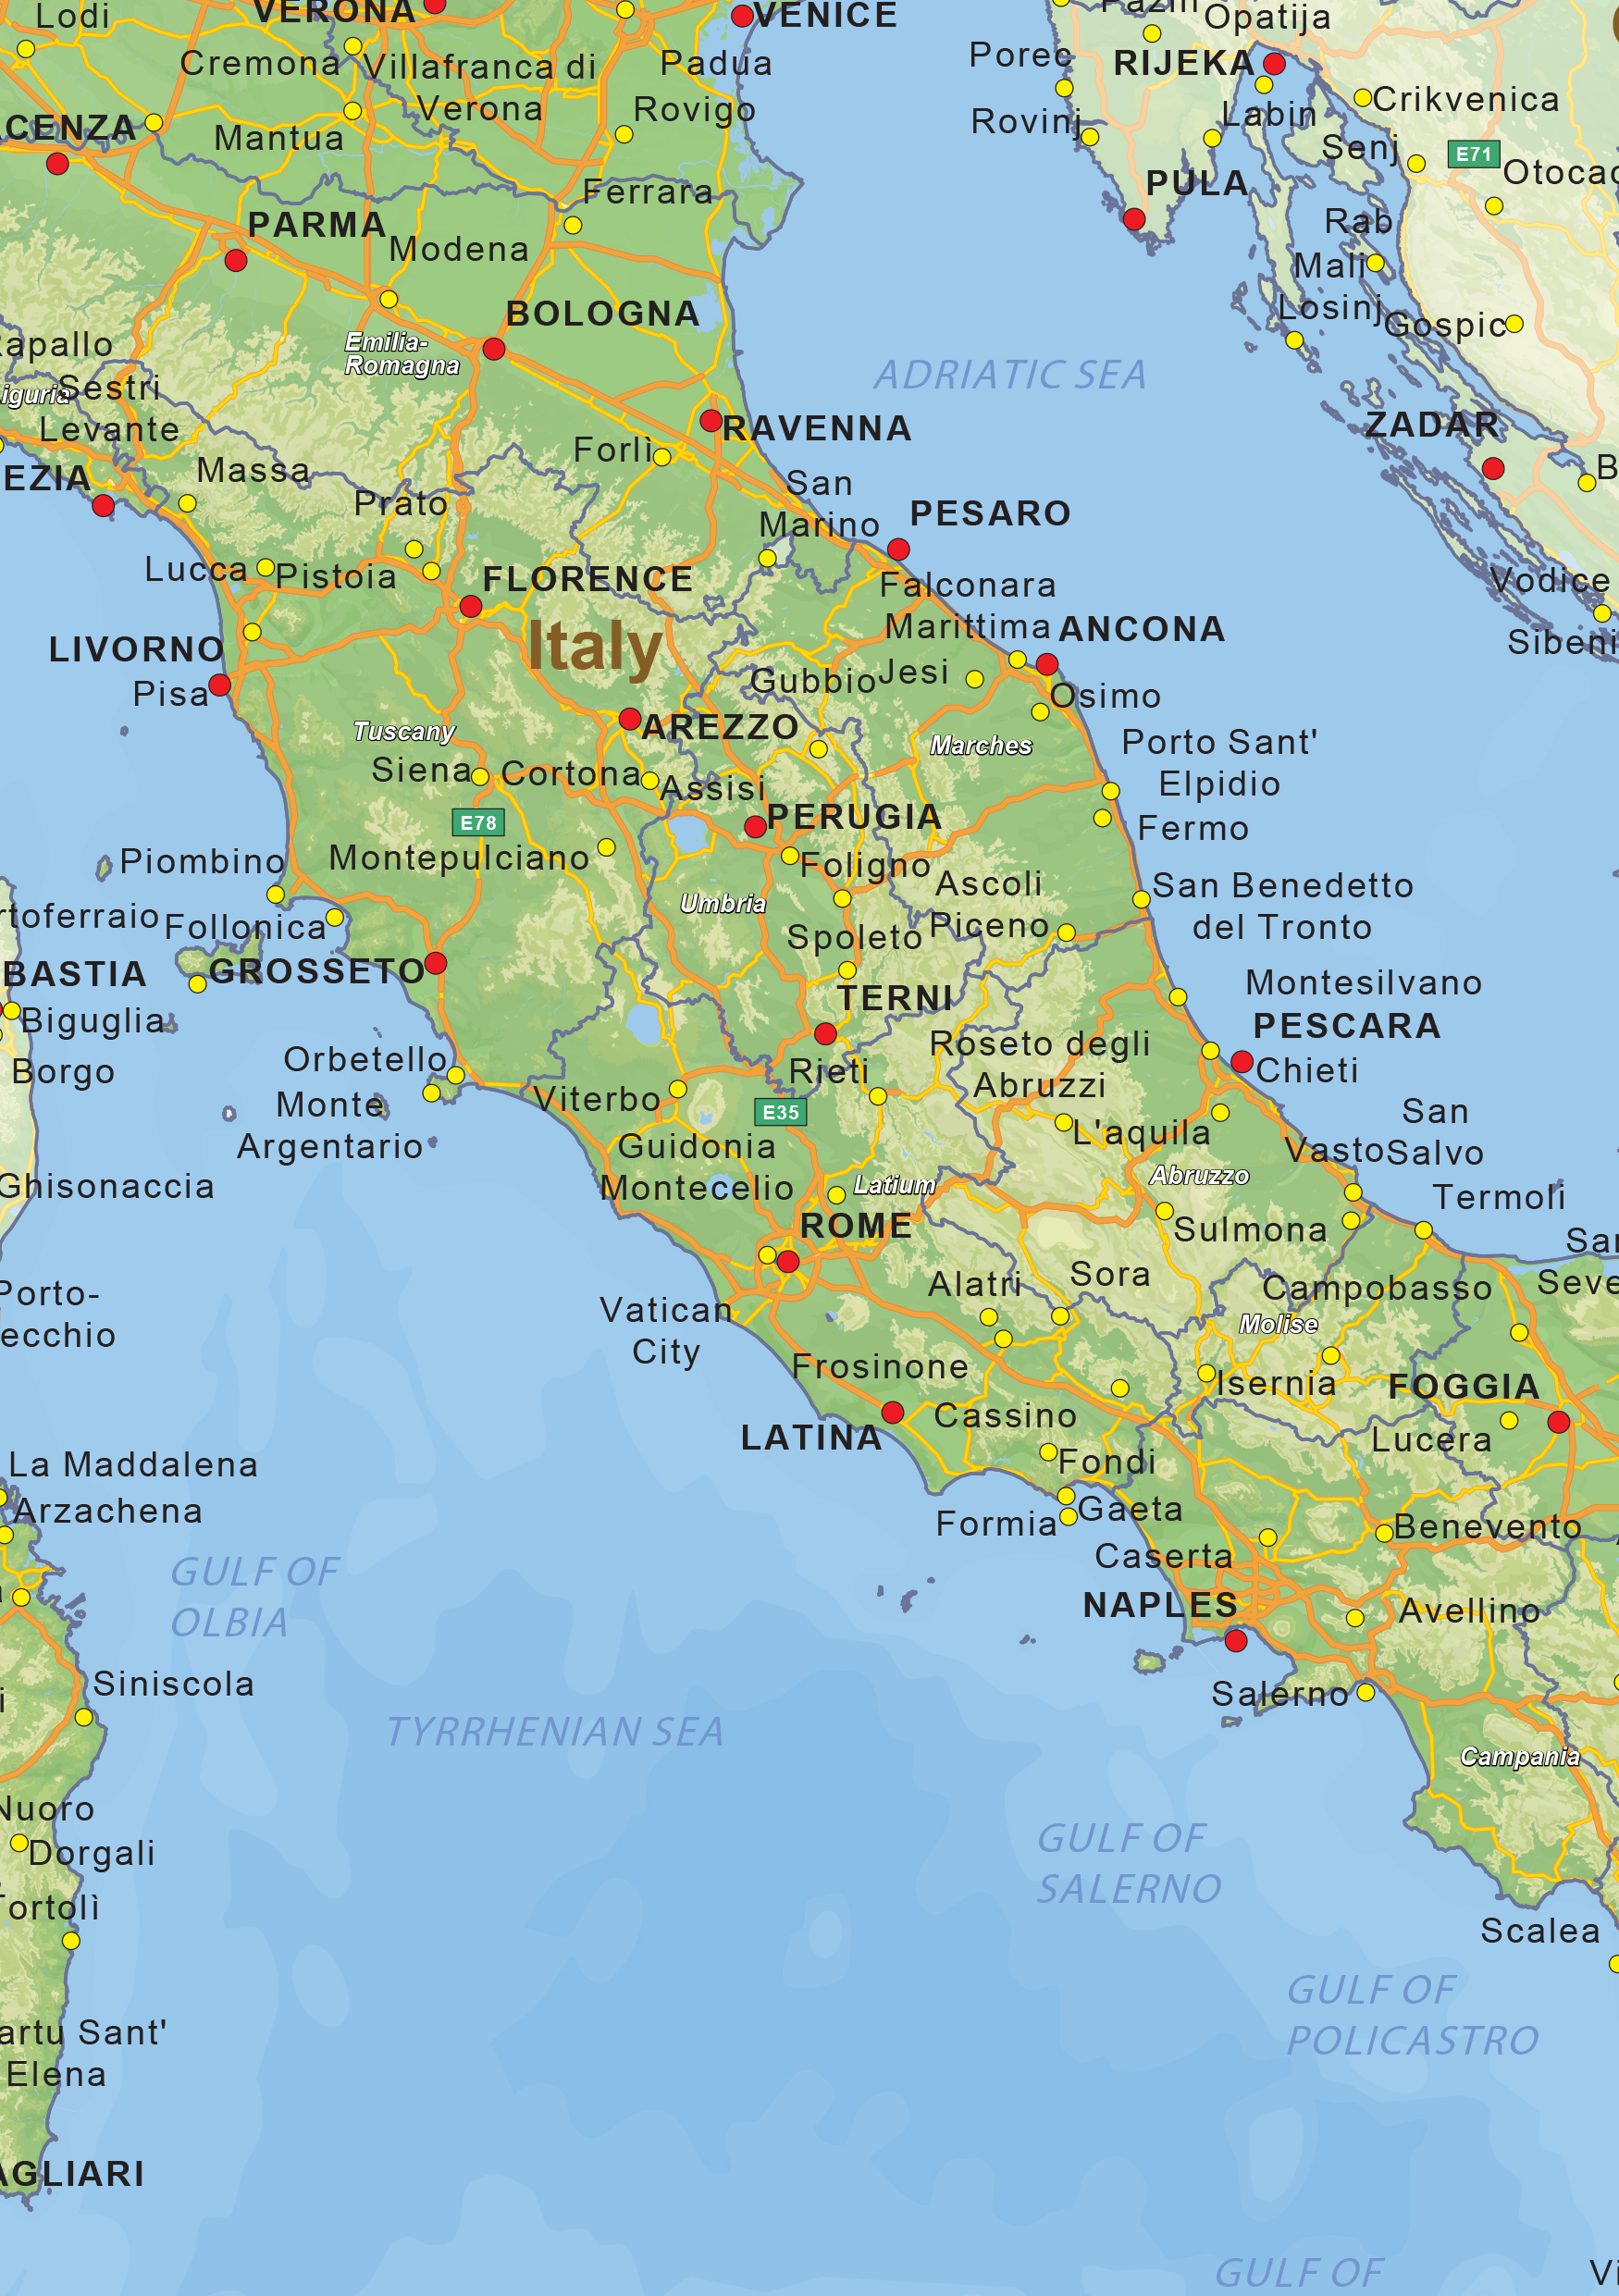 Digital Physical Map Of Italy The World Of Mapscom - Physical map of italy